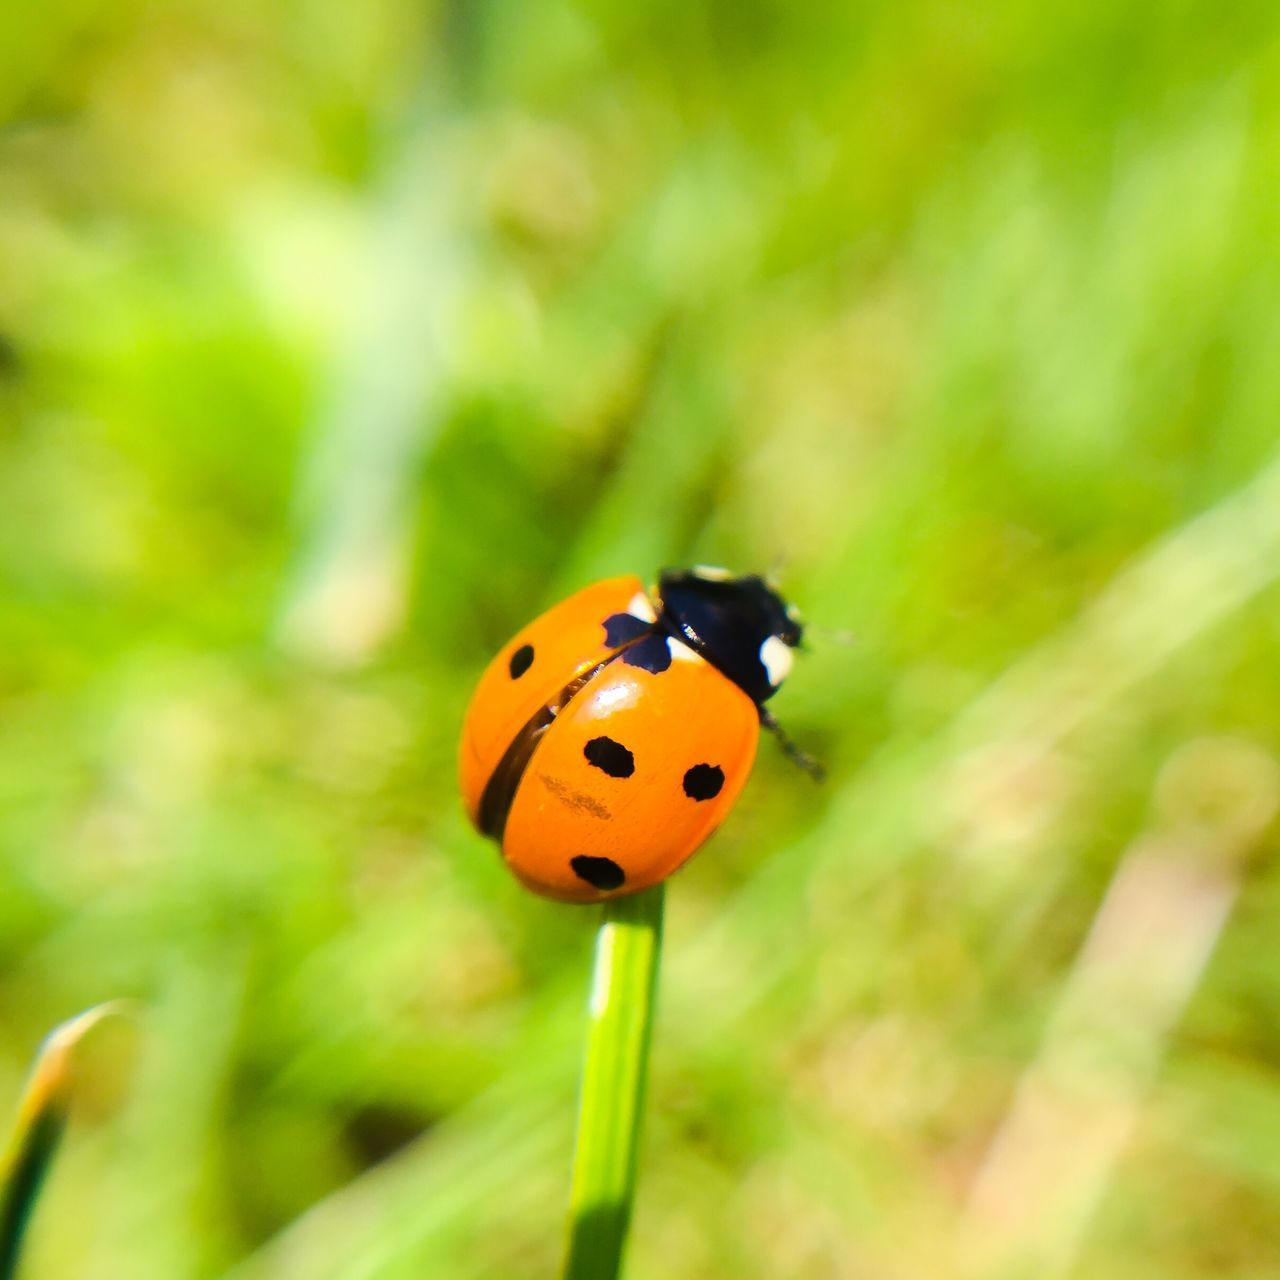 Ladybug on blade of grass Ladybug Insect Photography Macro Photography Nature Photography Insects  Insect Detail Macro Close-up Grass Stalk Blade Of Grass Summertime Springtime